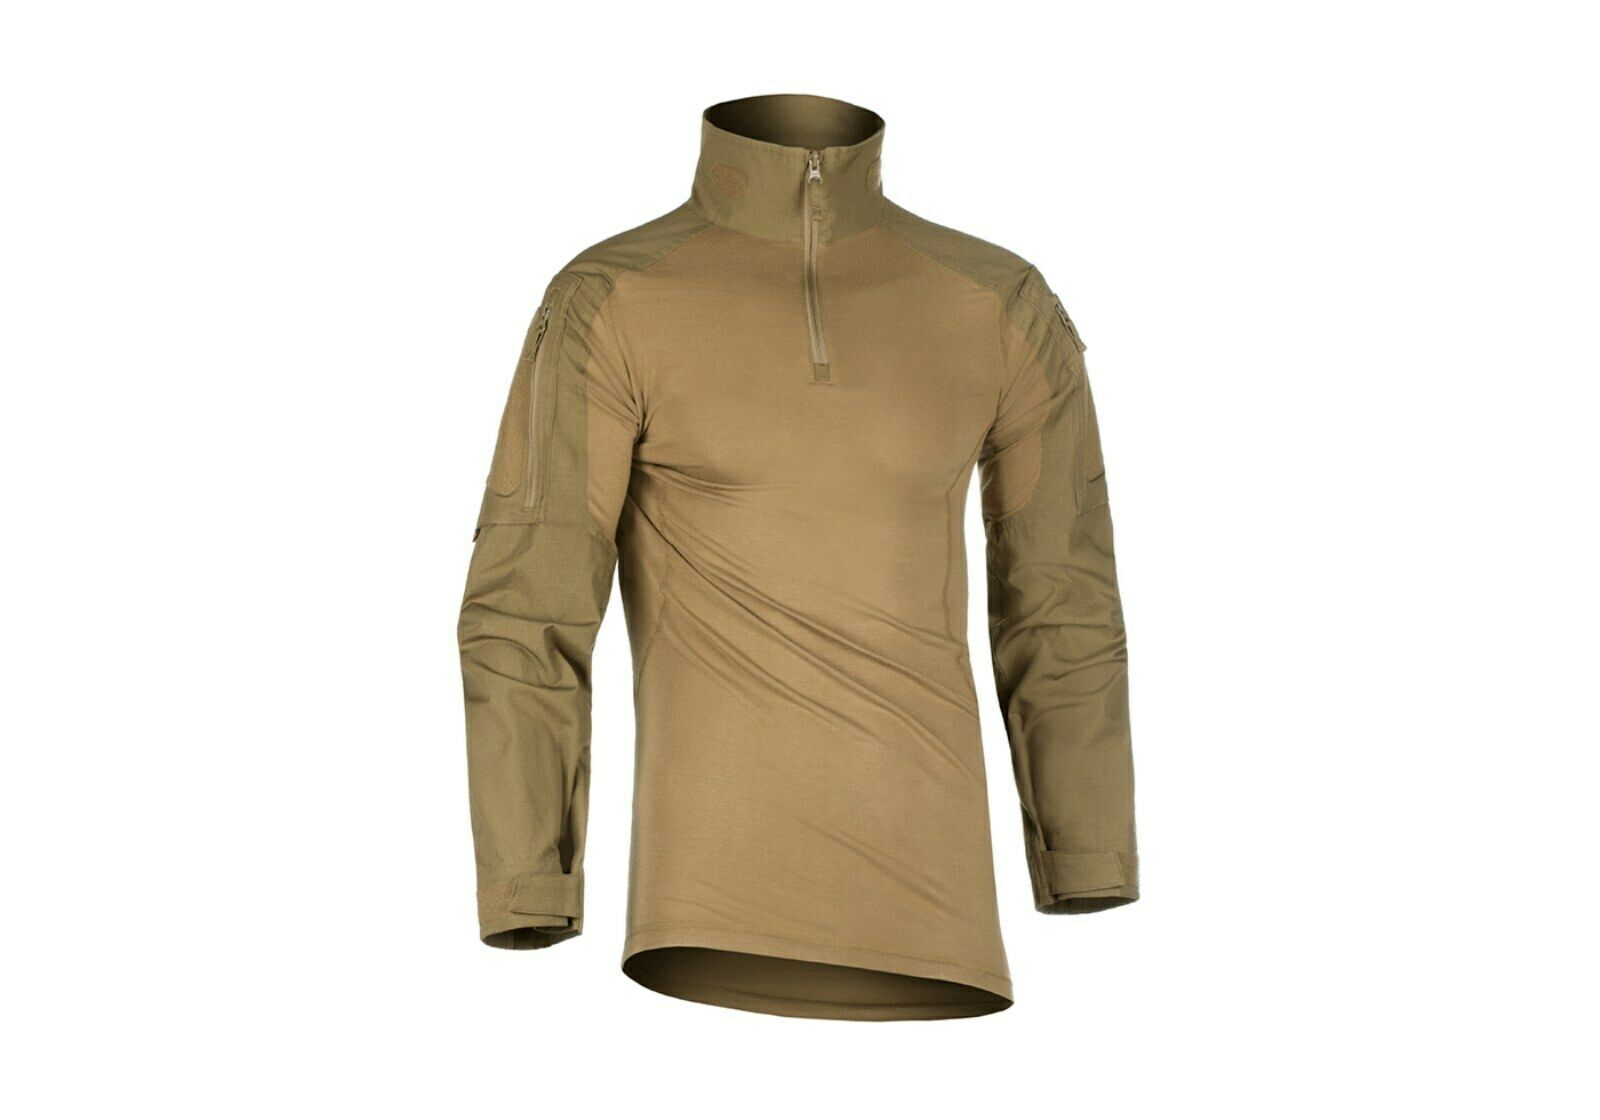 CLAWGEAR® OPERATOR Combat Military Premium Shirt - Coyote -  Brand New  first-class quality